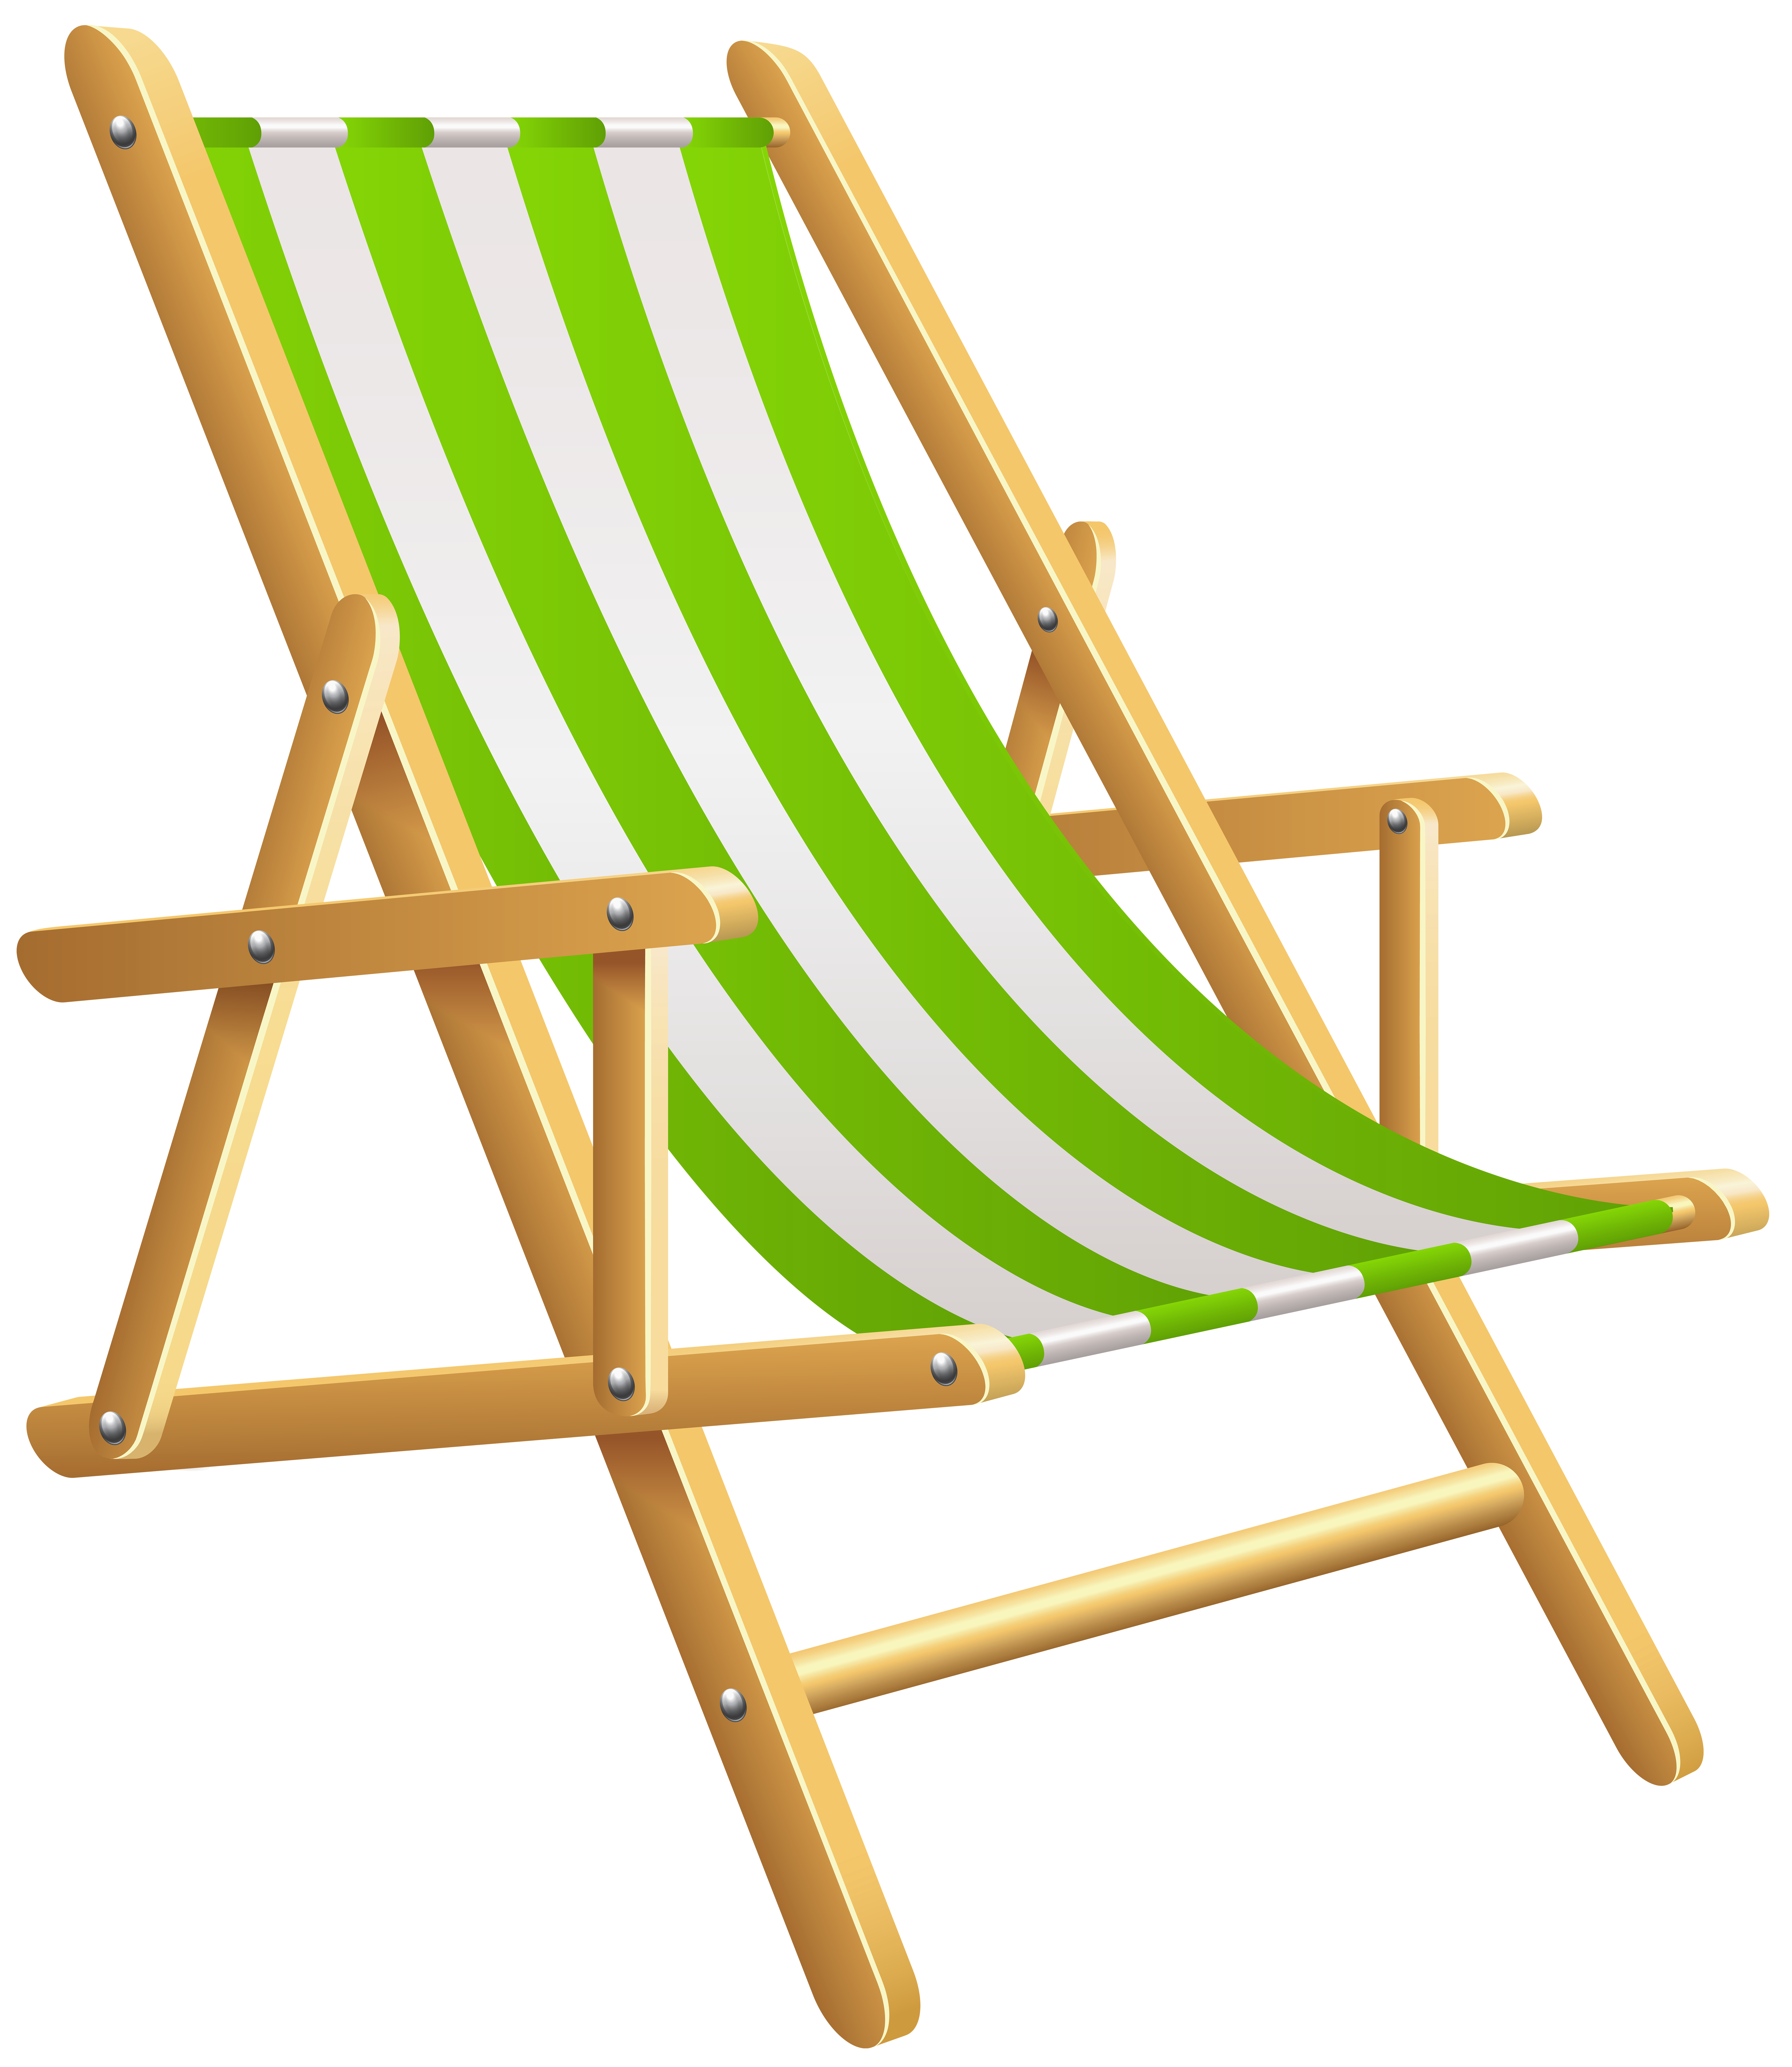 Furniture clipart wedding chair. Beach png clip art